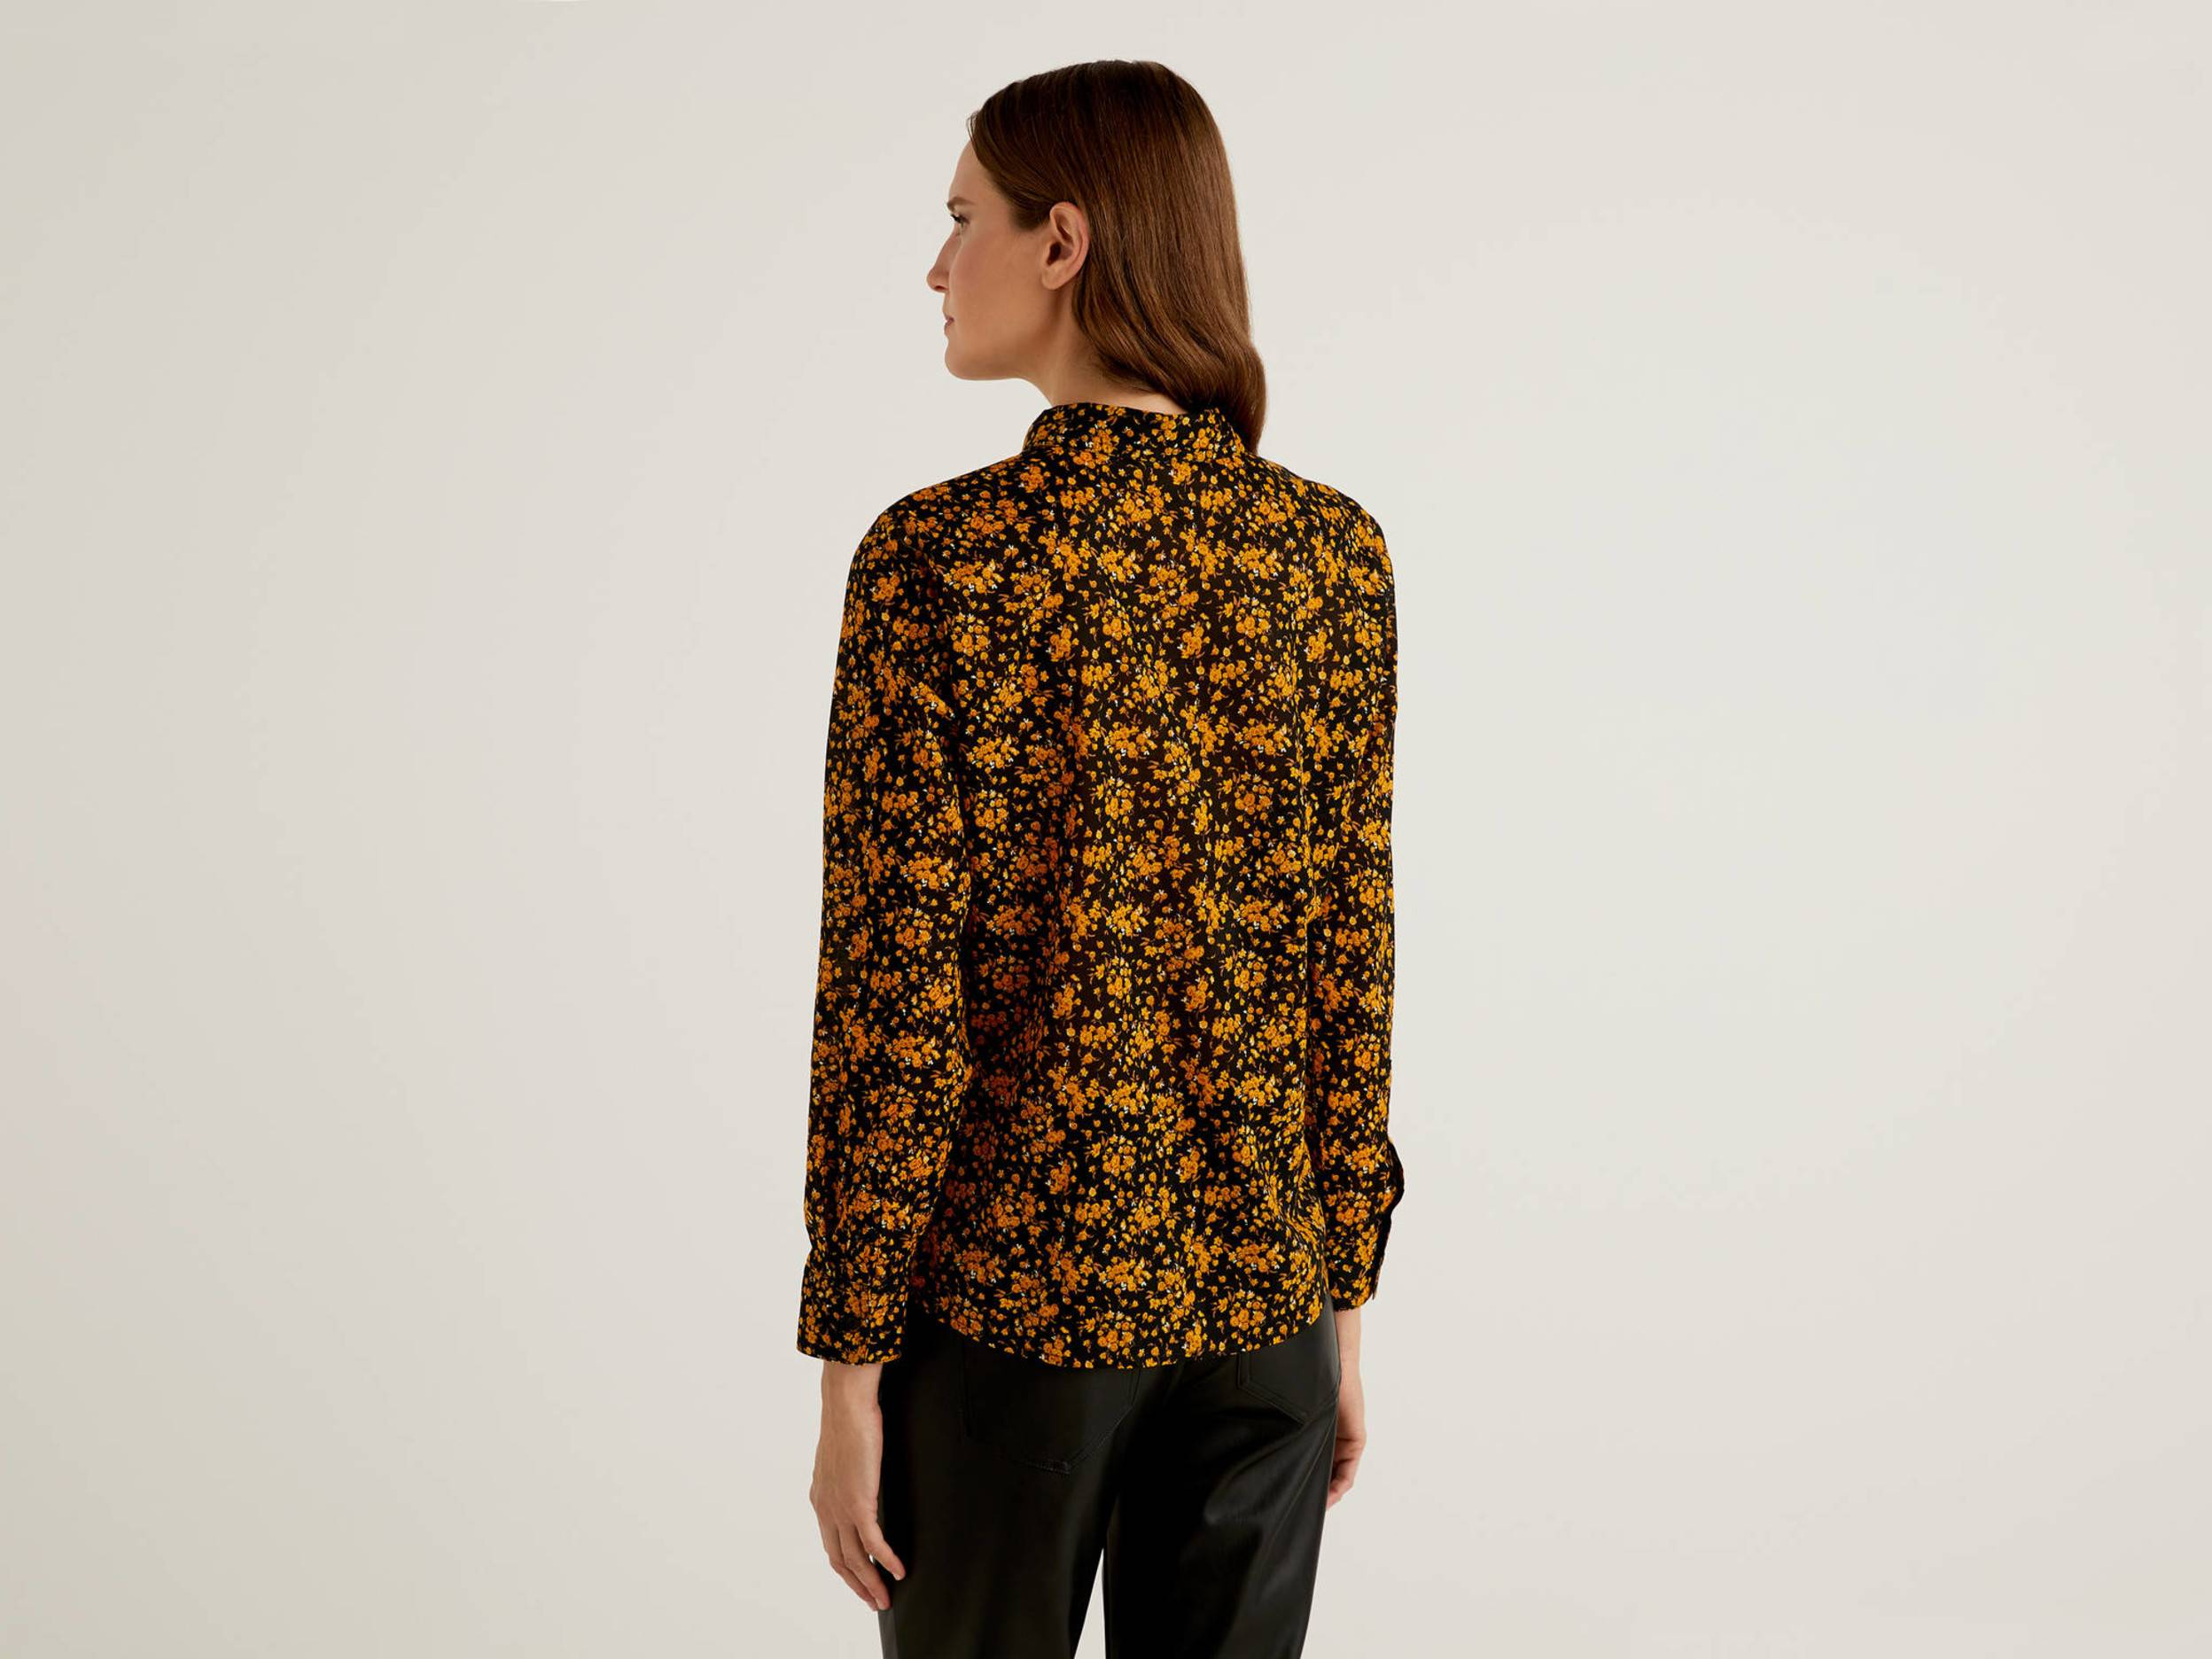 United Colors of Benetton Benetton, Black Shirt With Small Flowers In 100% Cotton, taglia S, Black, Women